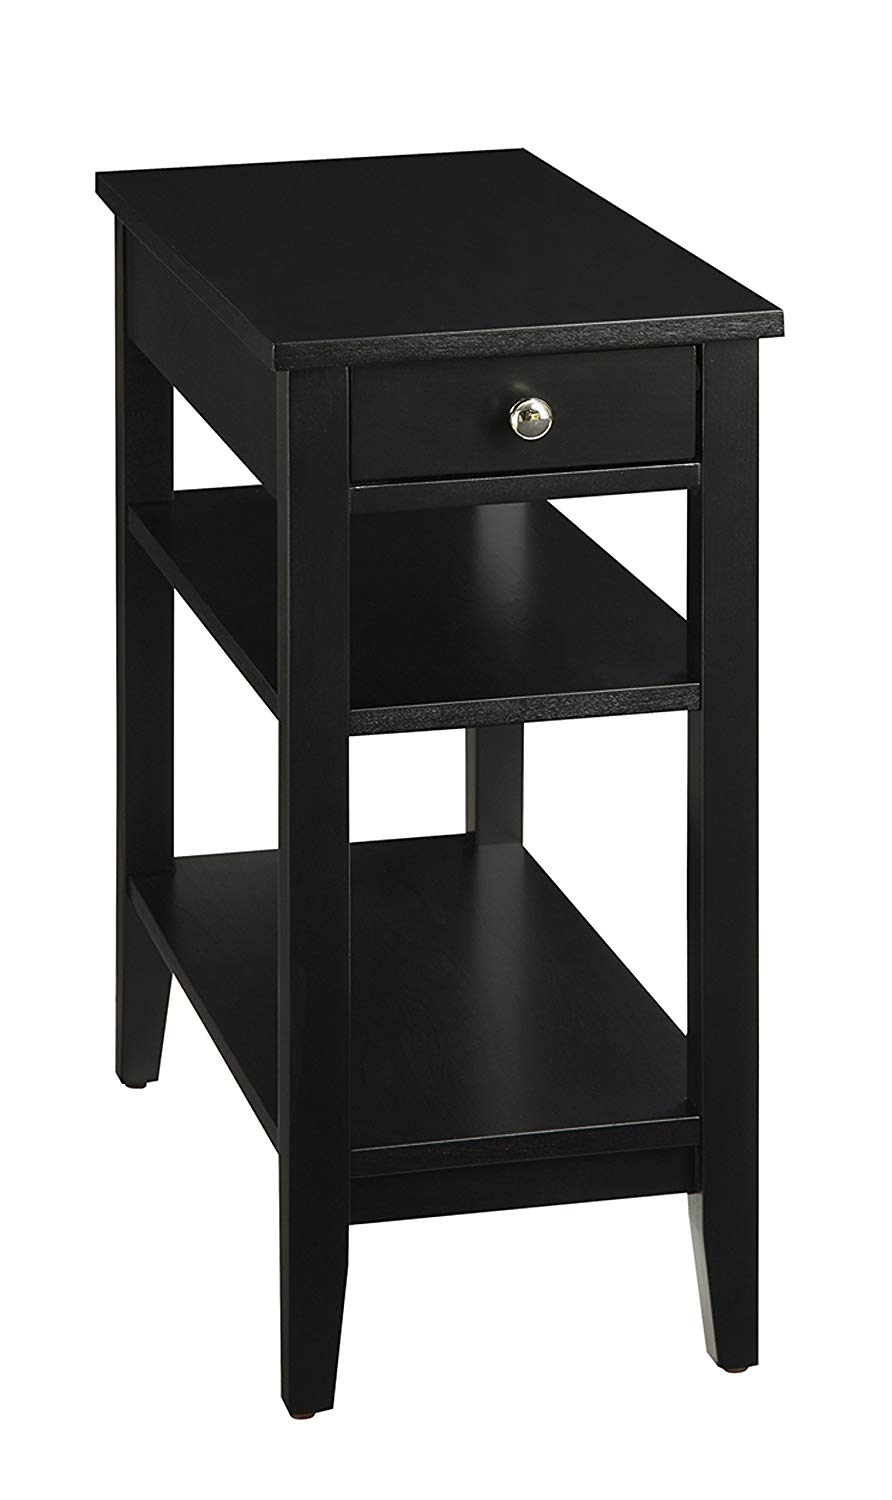 convenience concepts american heritage tier end table monarch hall console accent cappuccino with drawer black kitchen dining corner wine rack small gold lamp light wood bedside